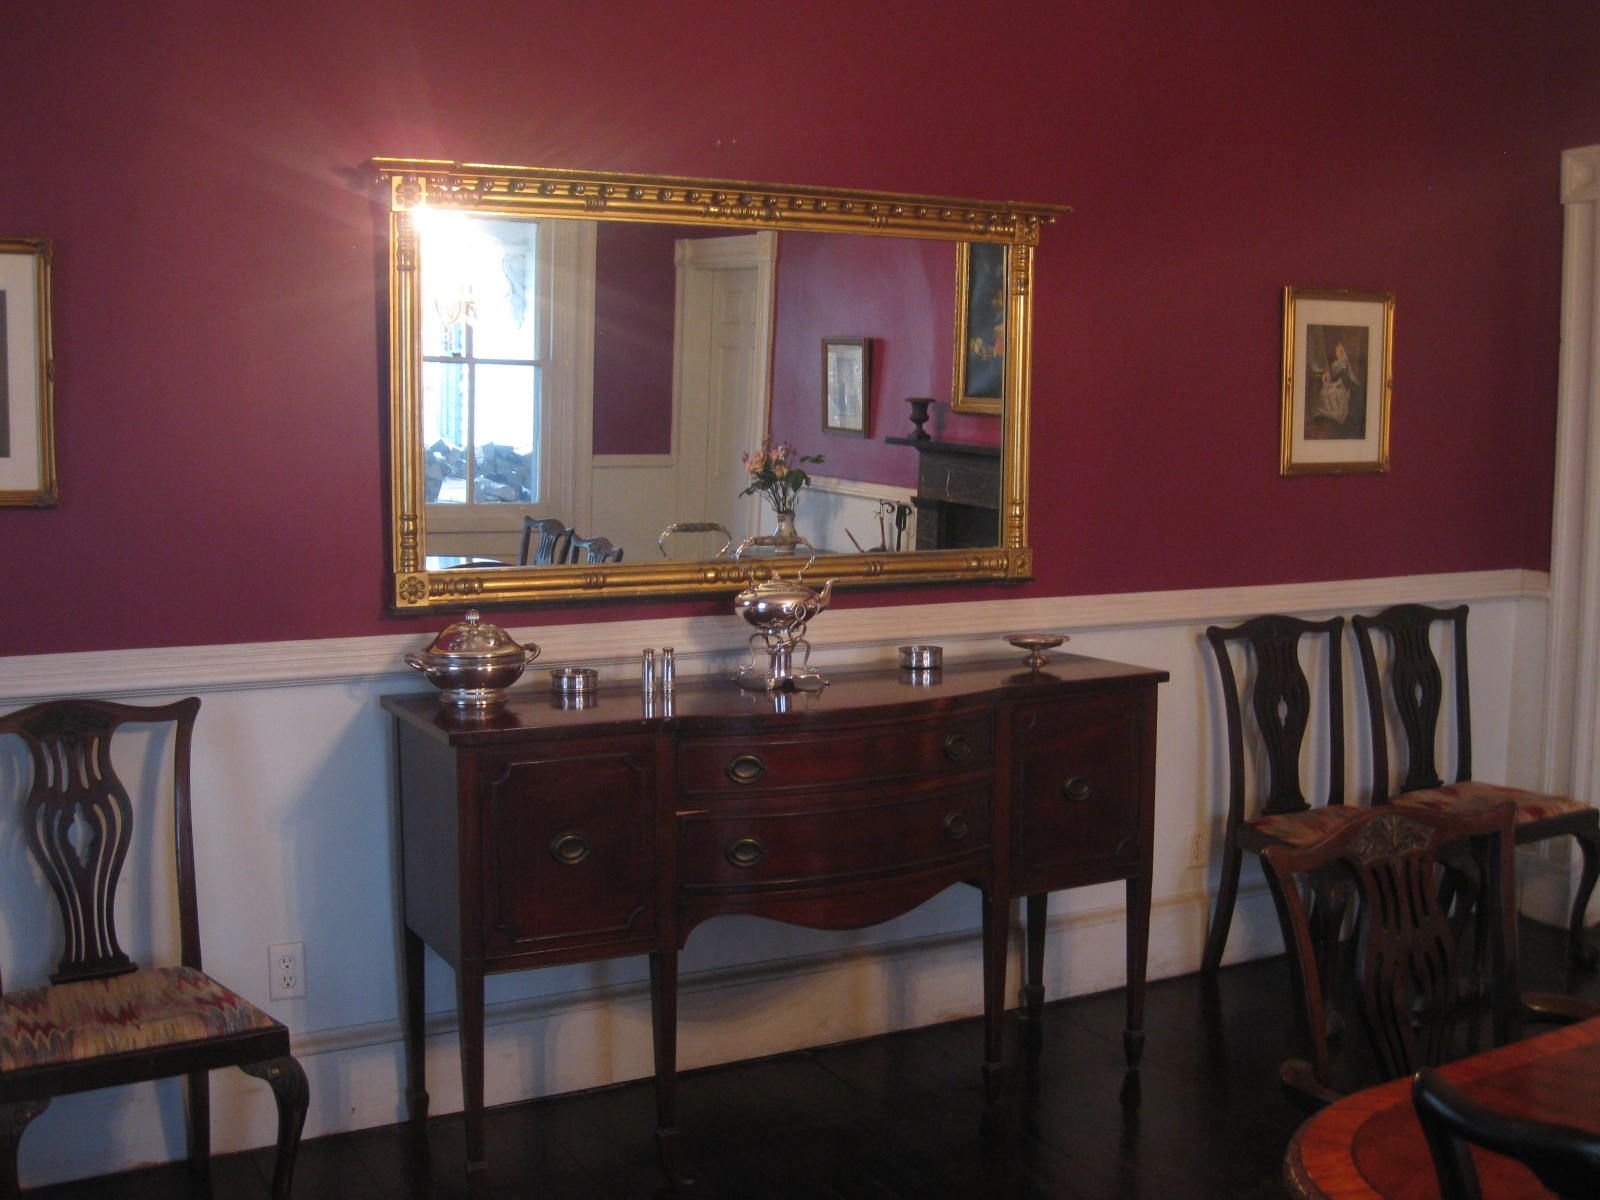 Paintingaroomwithachairrail  Used A Plumcolored Paint For Captivating Dining Room Colors With Chair Rail Review